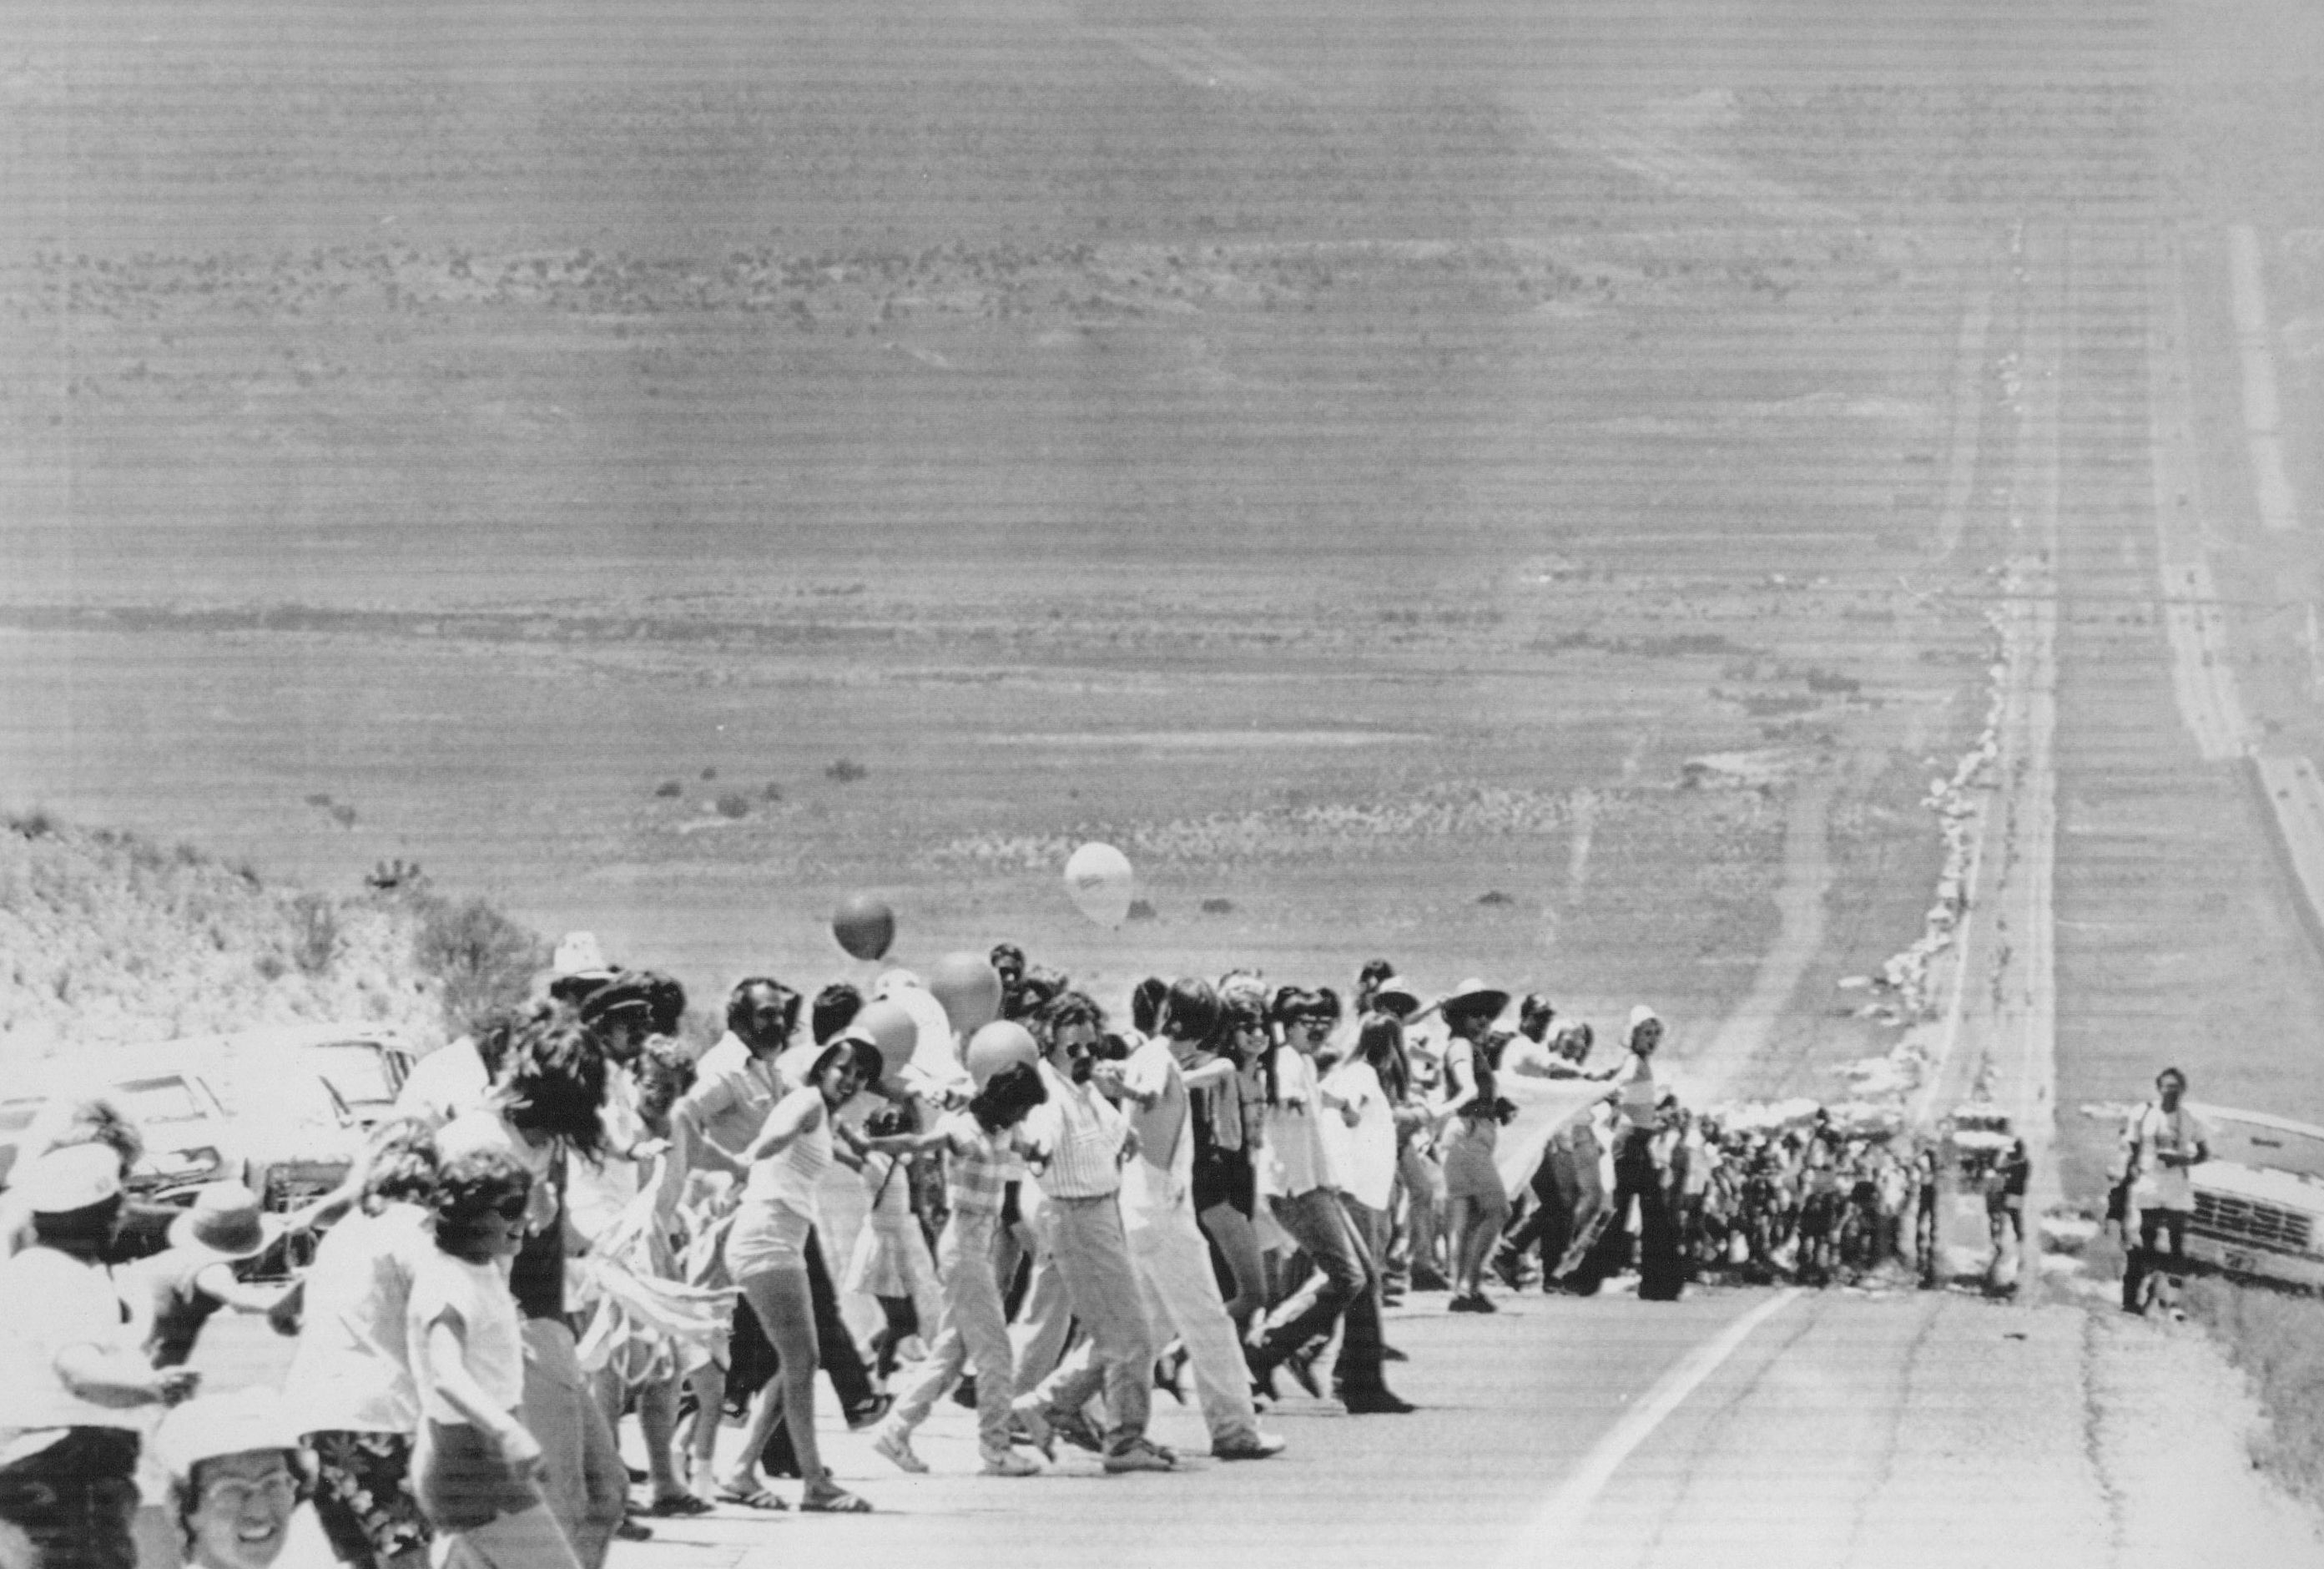 Participants in Hands Across America stretched along I -40, about 15 miles west of Albuquerque, New Mexico, in a human chain that could be seen for 10 miles